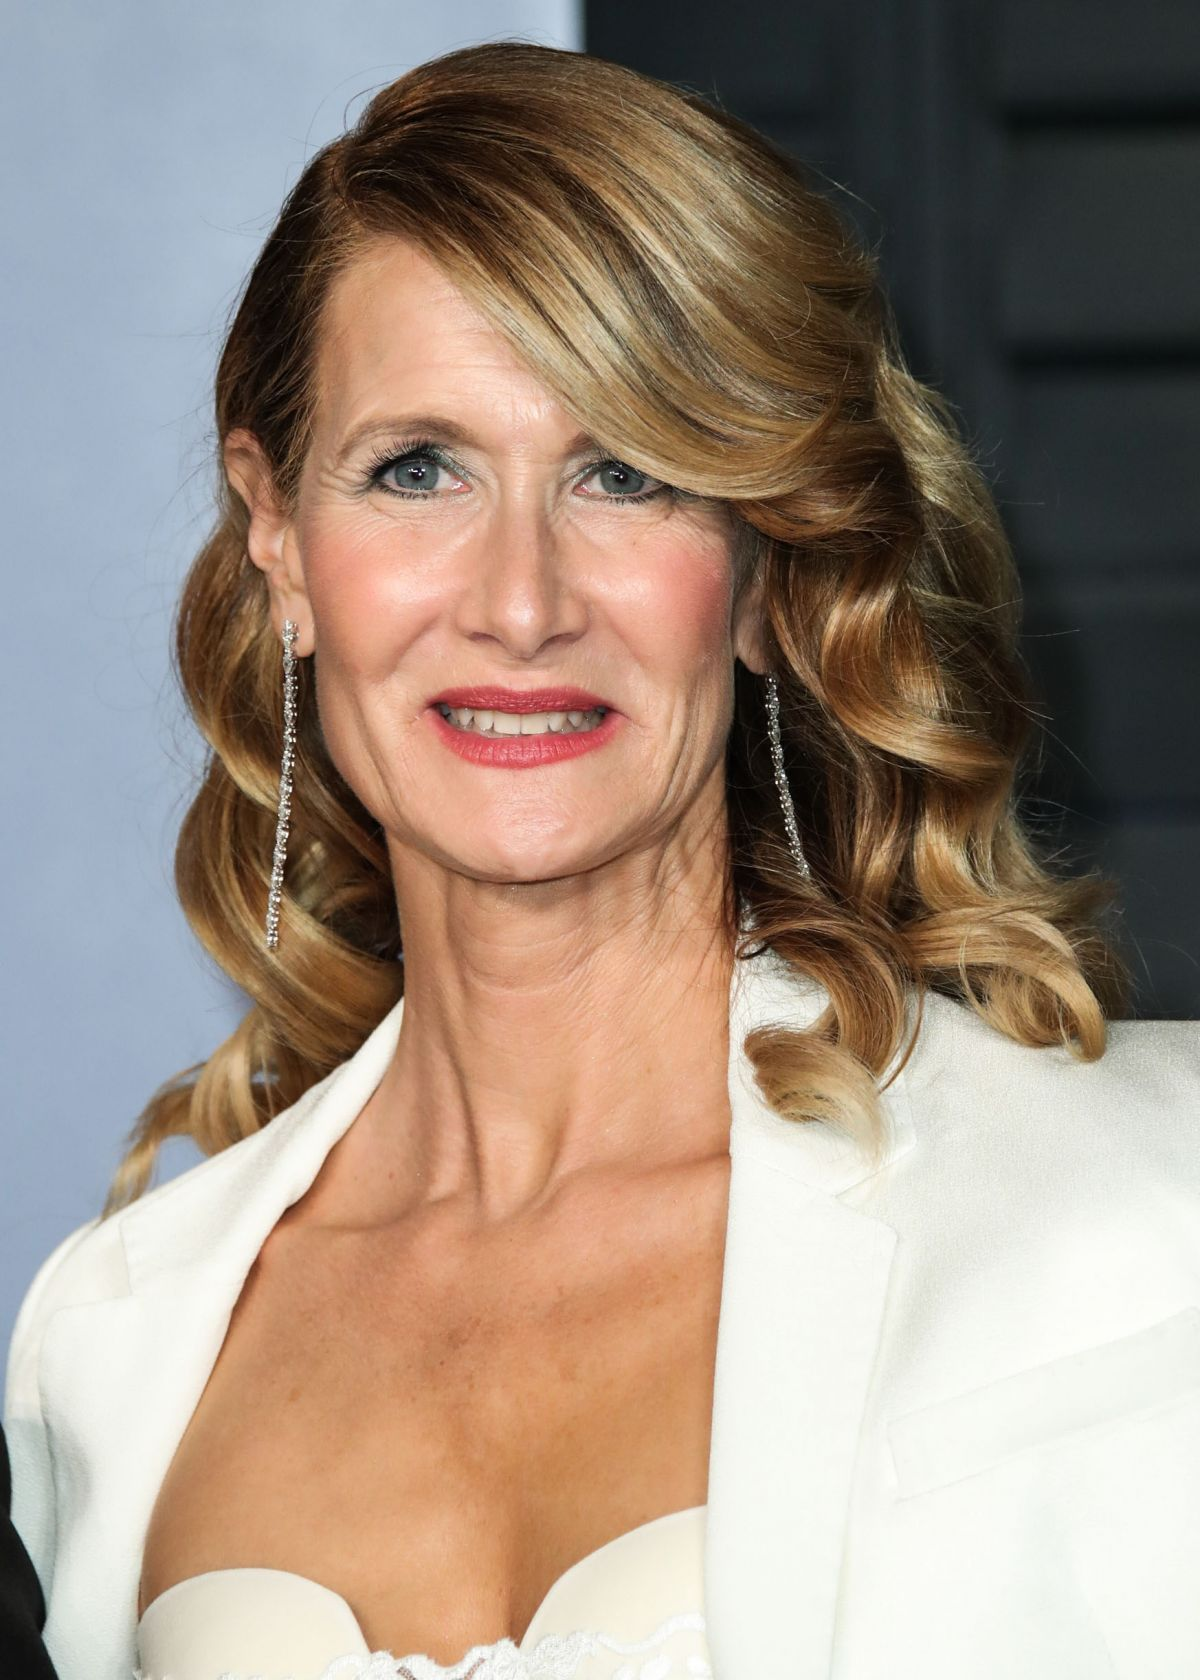 Laura Dern nude (37 foto and video), Tits, Sideboobs, Boobs, lingerie 2020